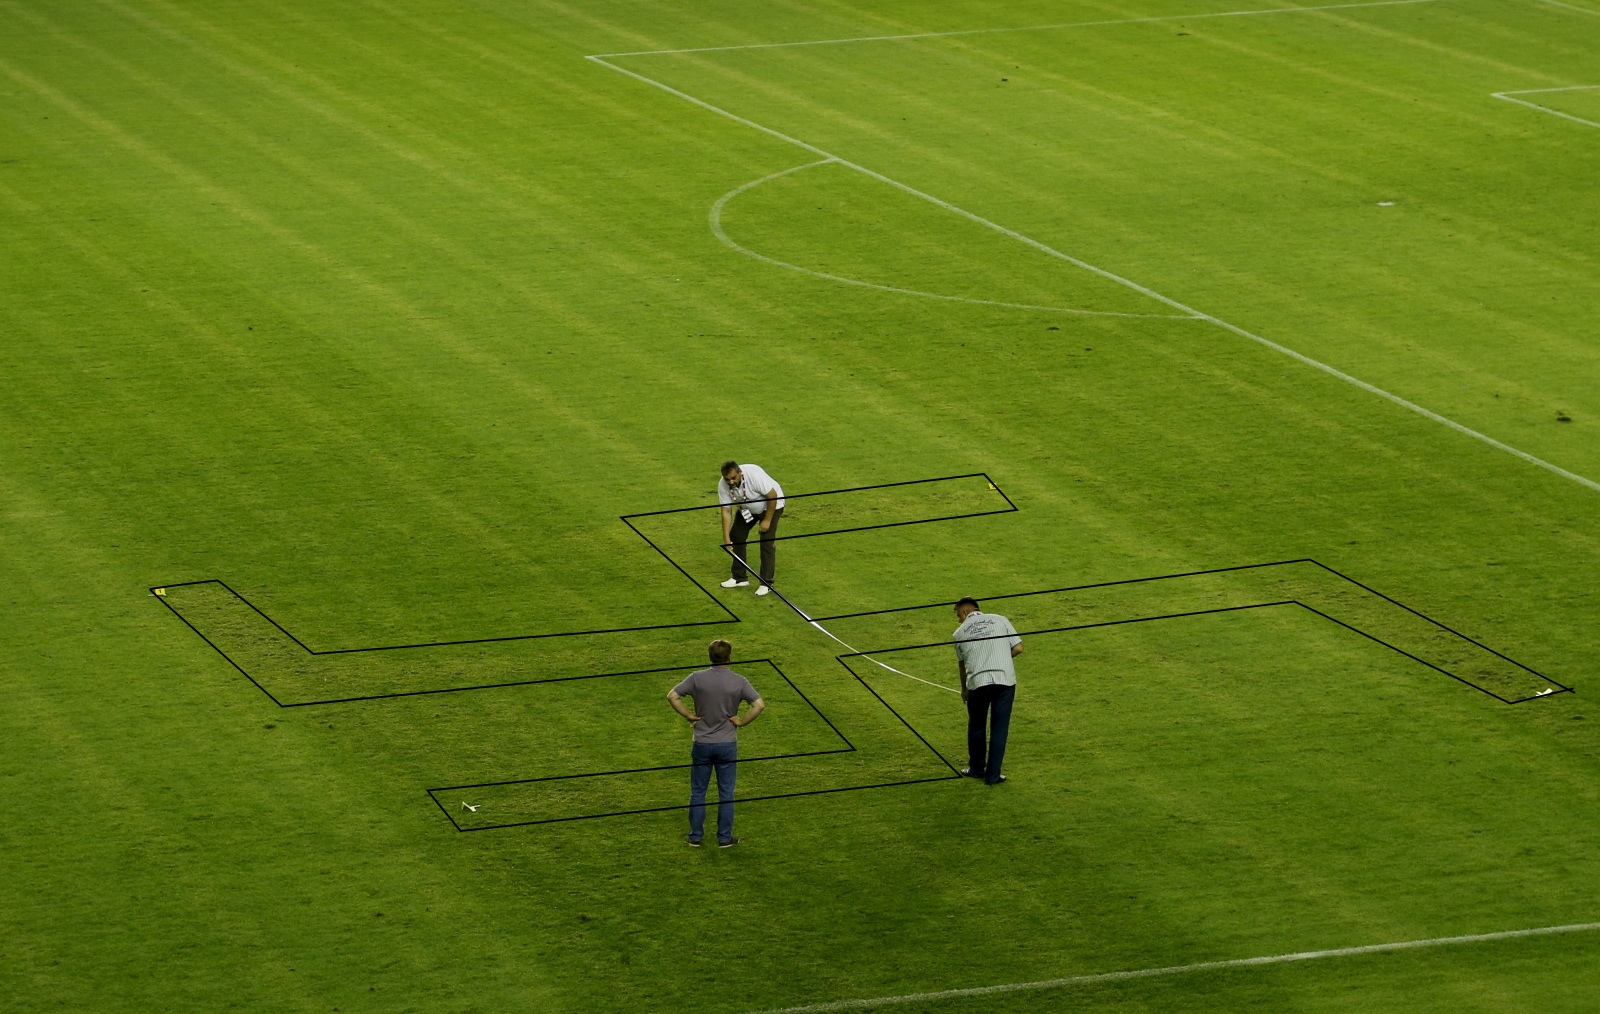 Croatia vs Italy swastika marked pitch